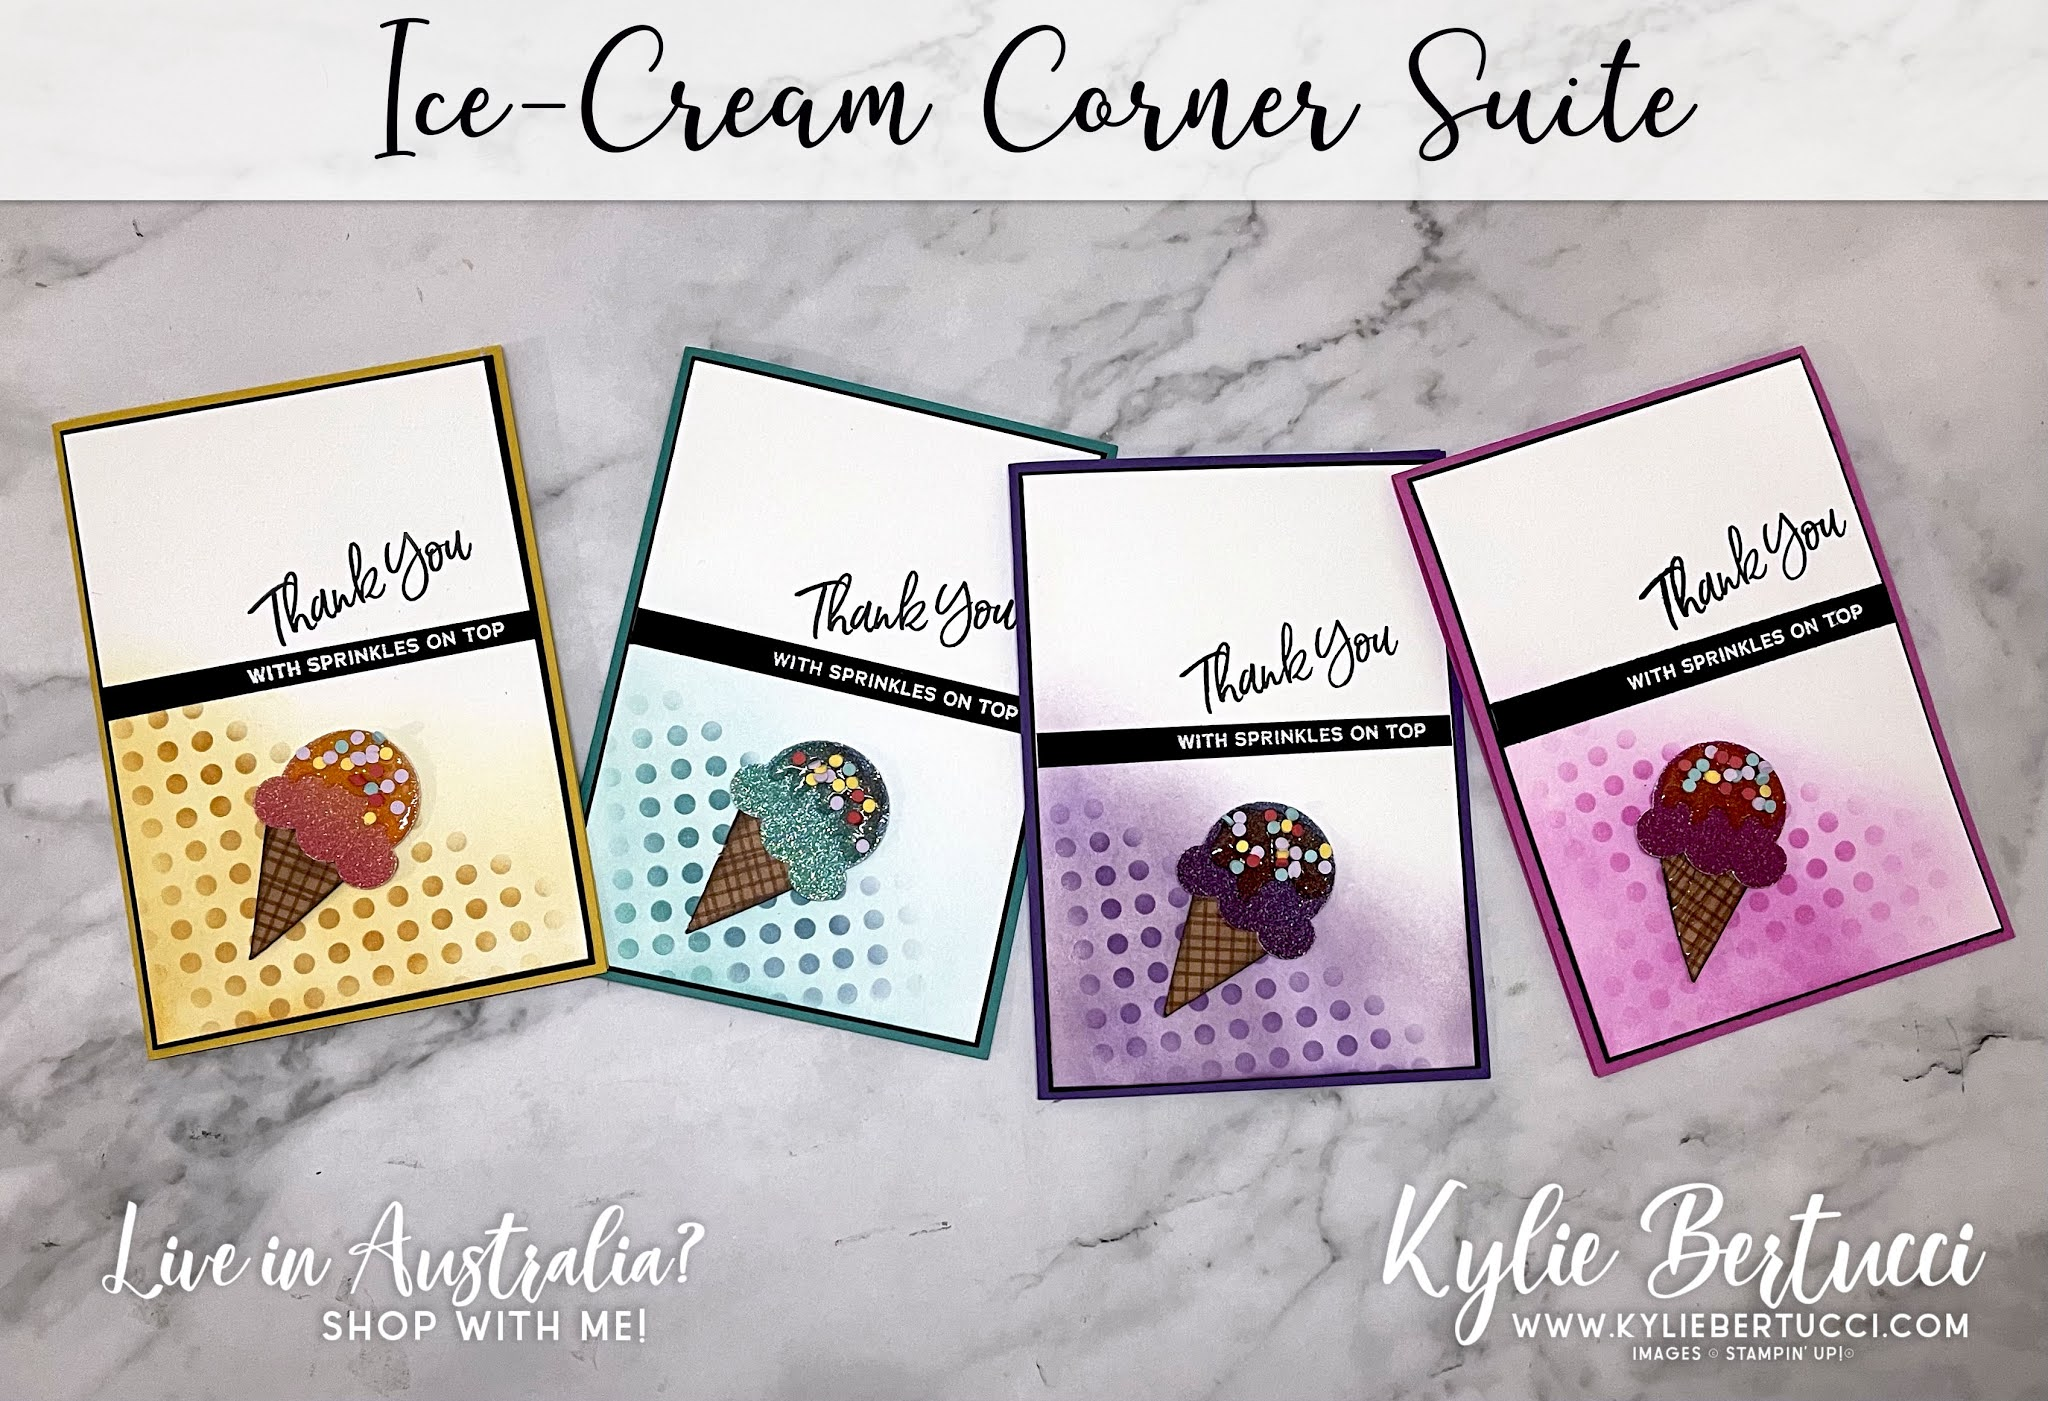 Top Ten International Highlights Winners Blog Hop January 2021 | Ice-Cream Corner Suite